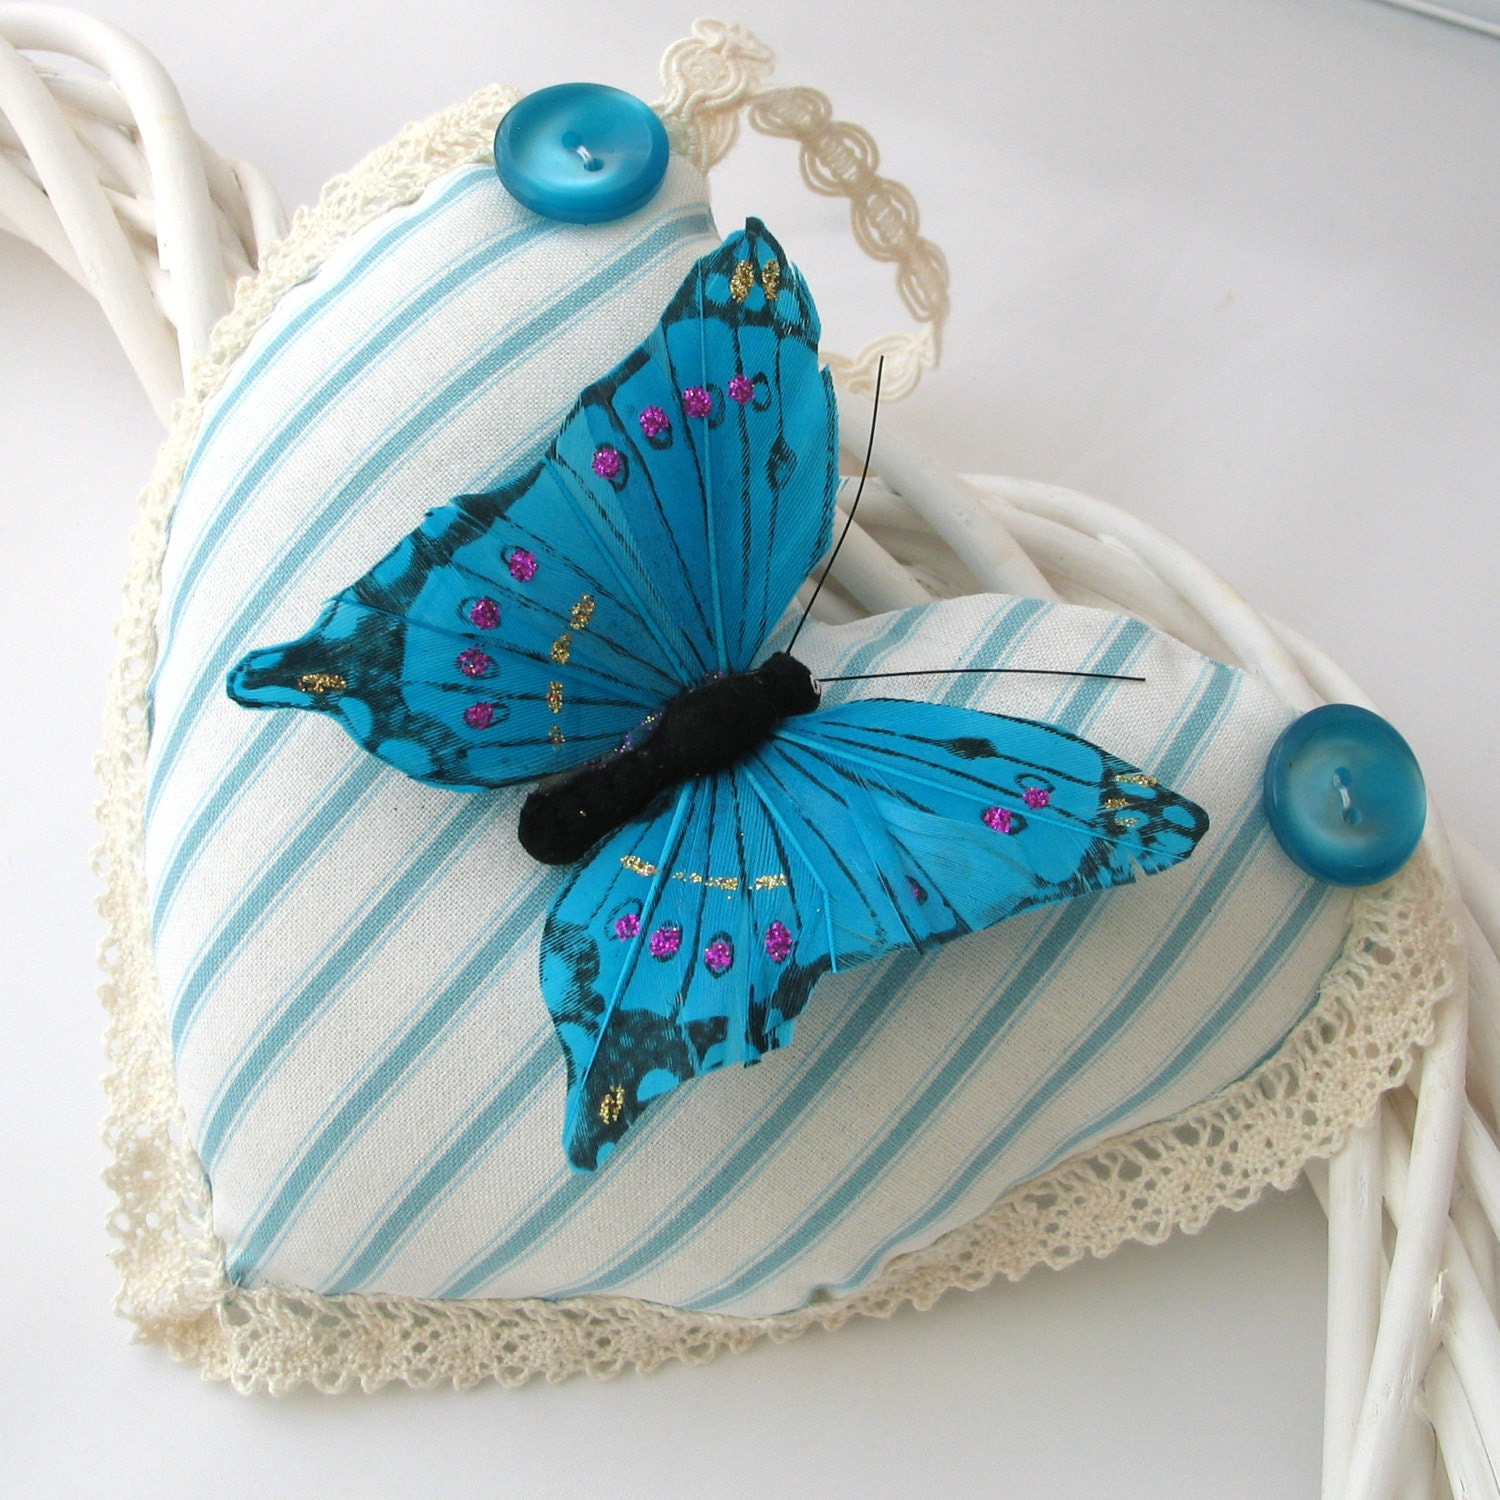 Turquoise Butterfly Heart Hanging Decoration Lavender Fragranced - AdienCardsandGifts